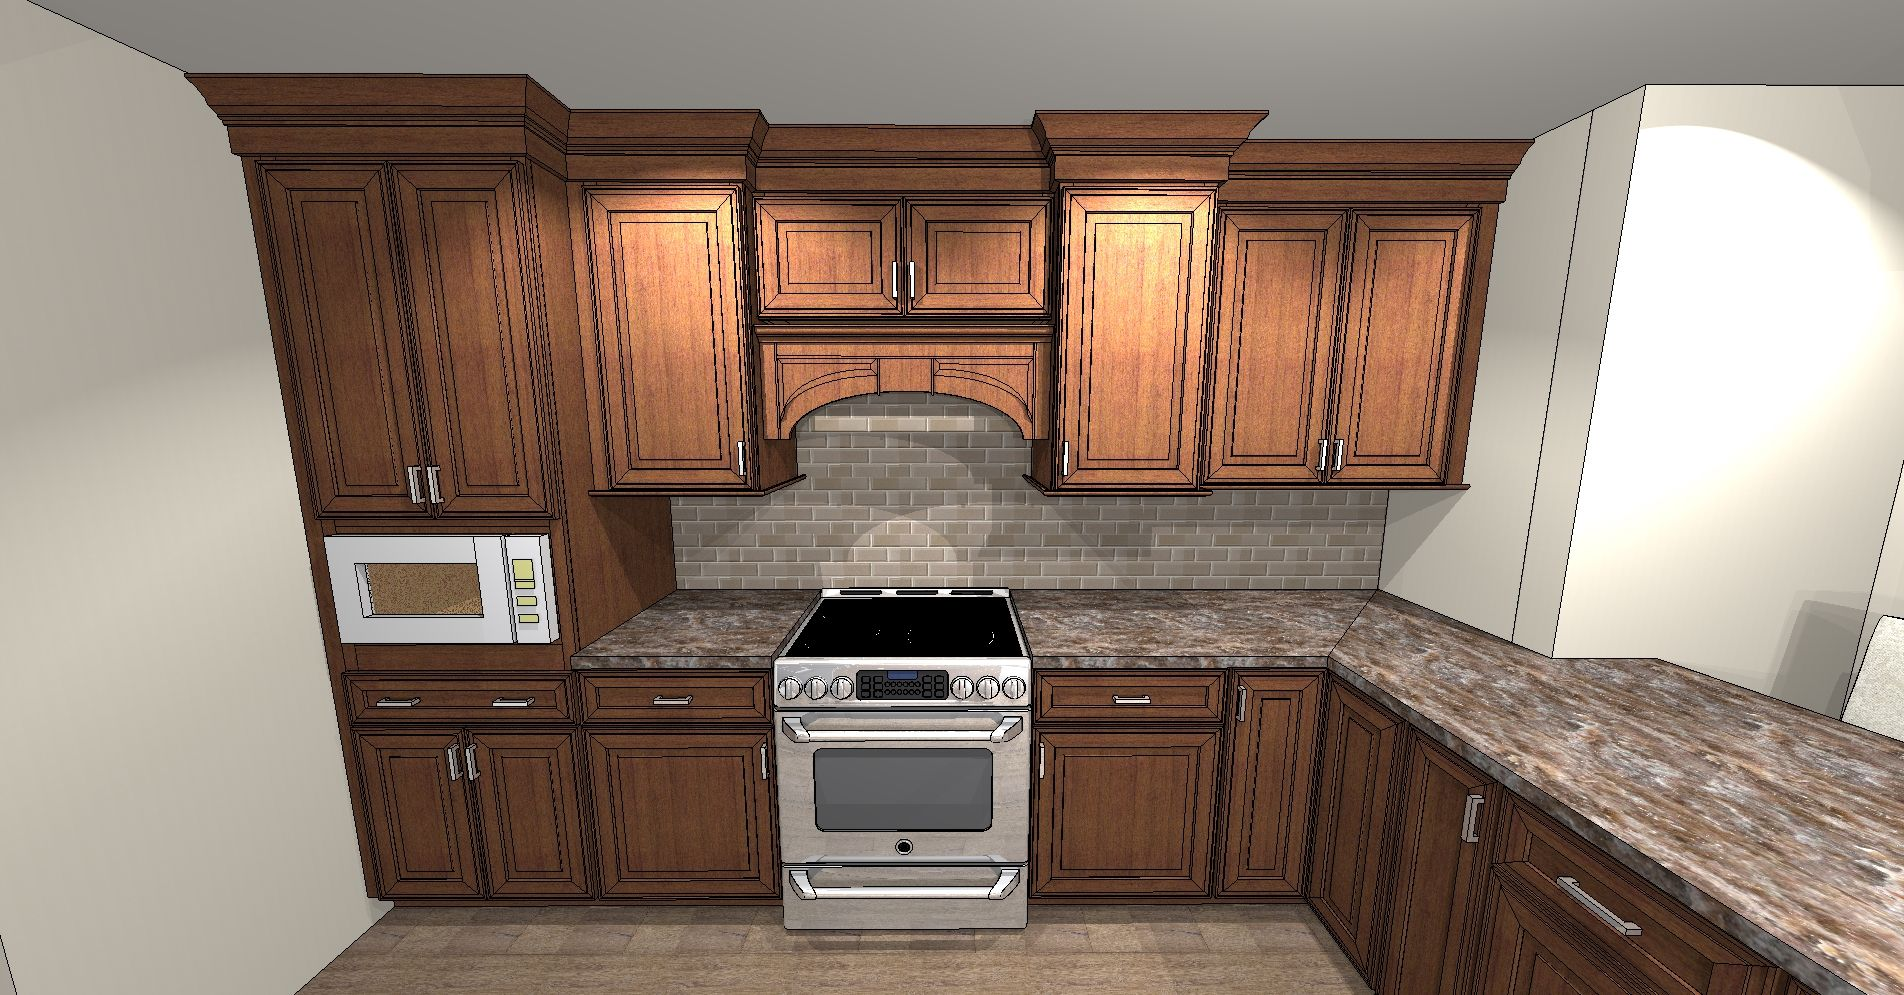 Omega cabinetry Finish: Cinnamon brushed sepia 1 of 2 ...